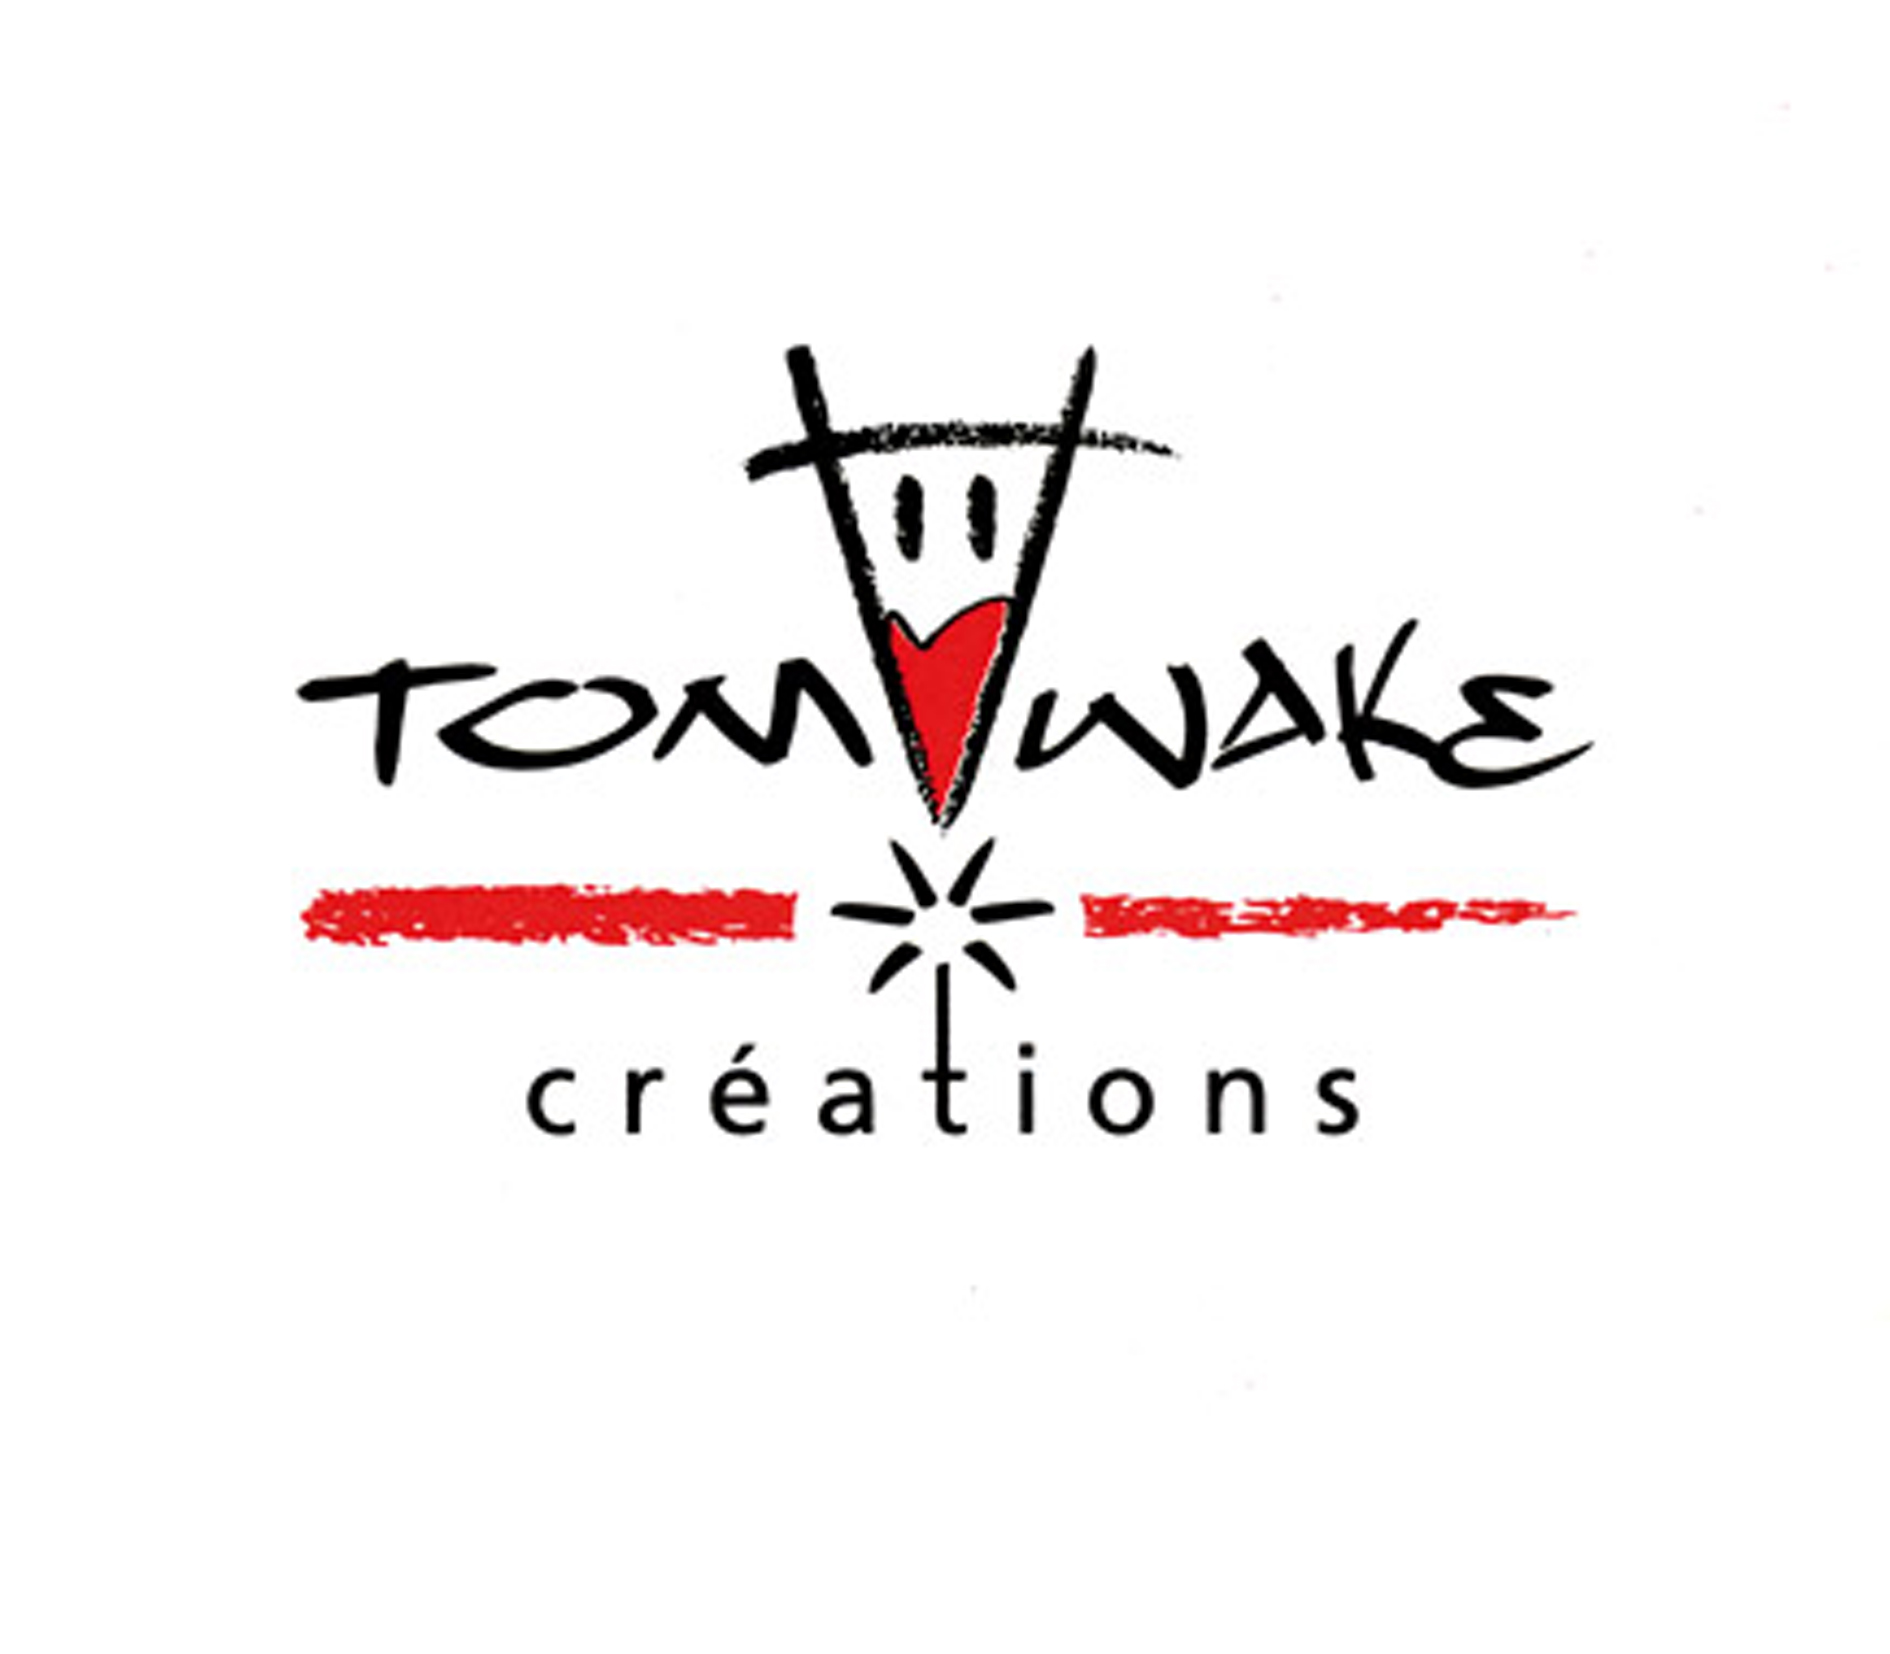 tomawake illustration